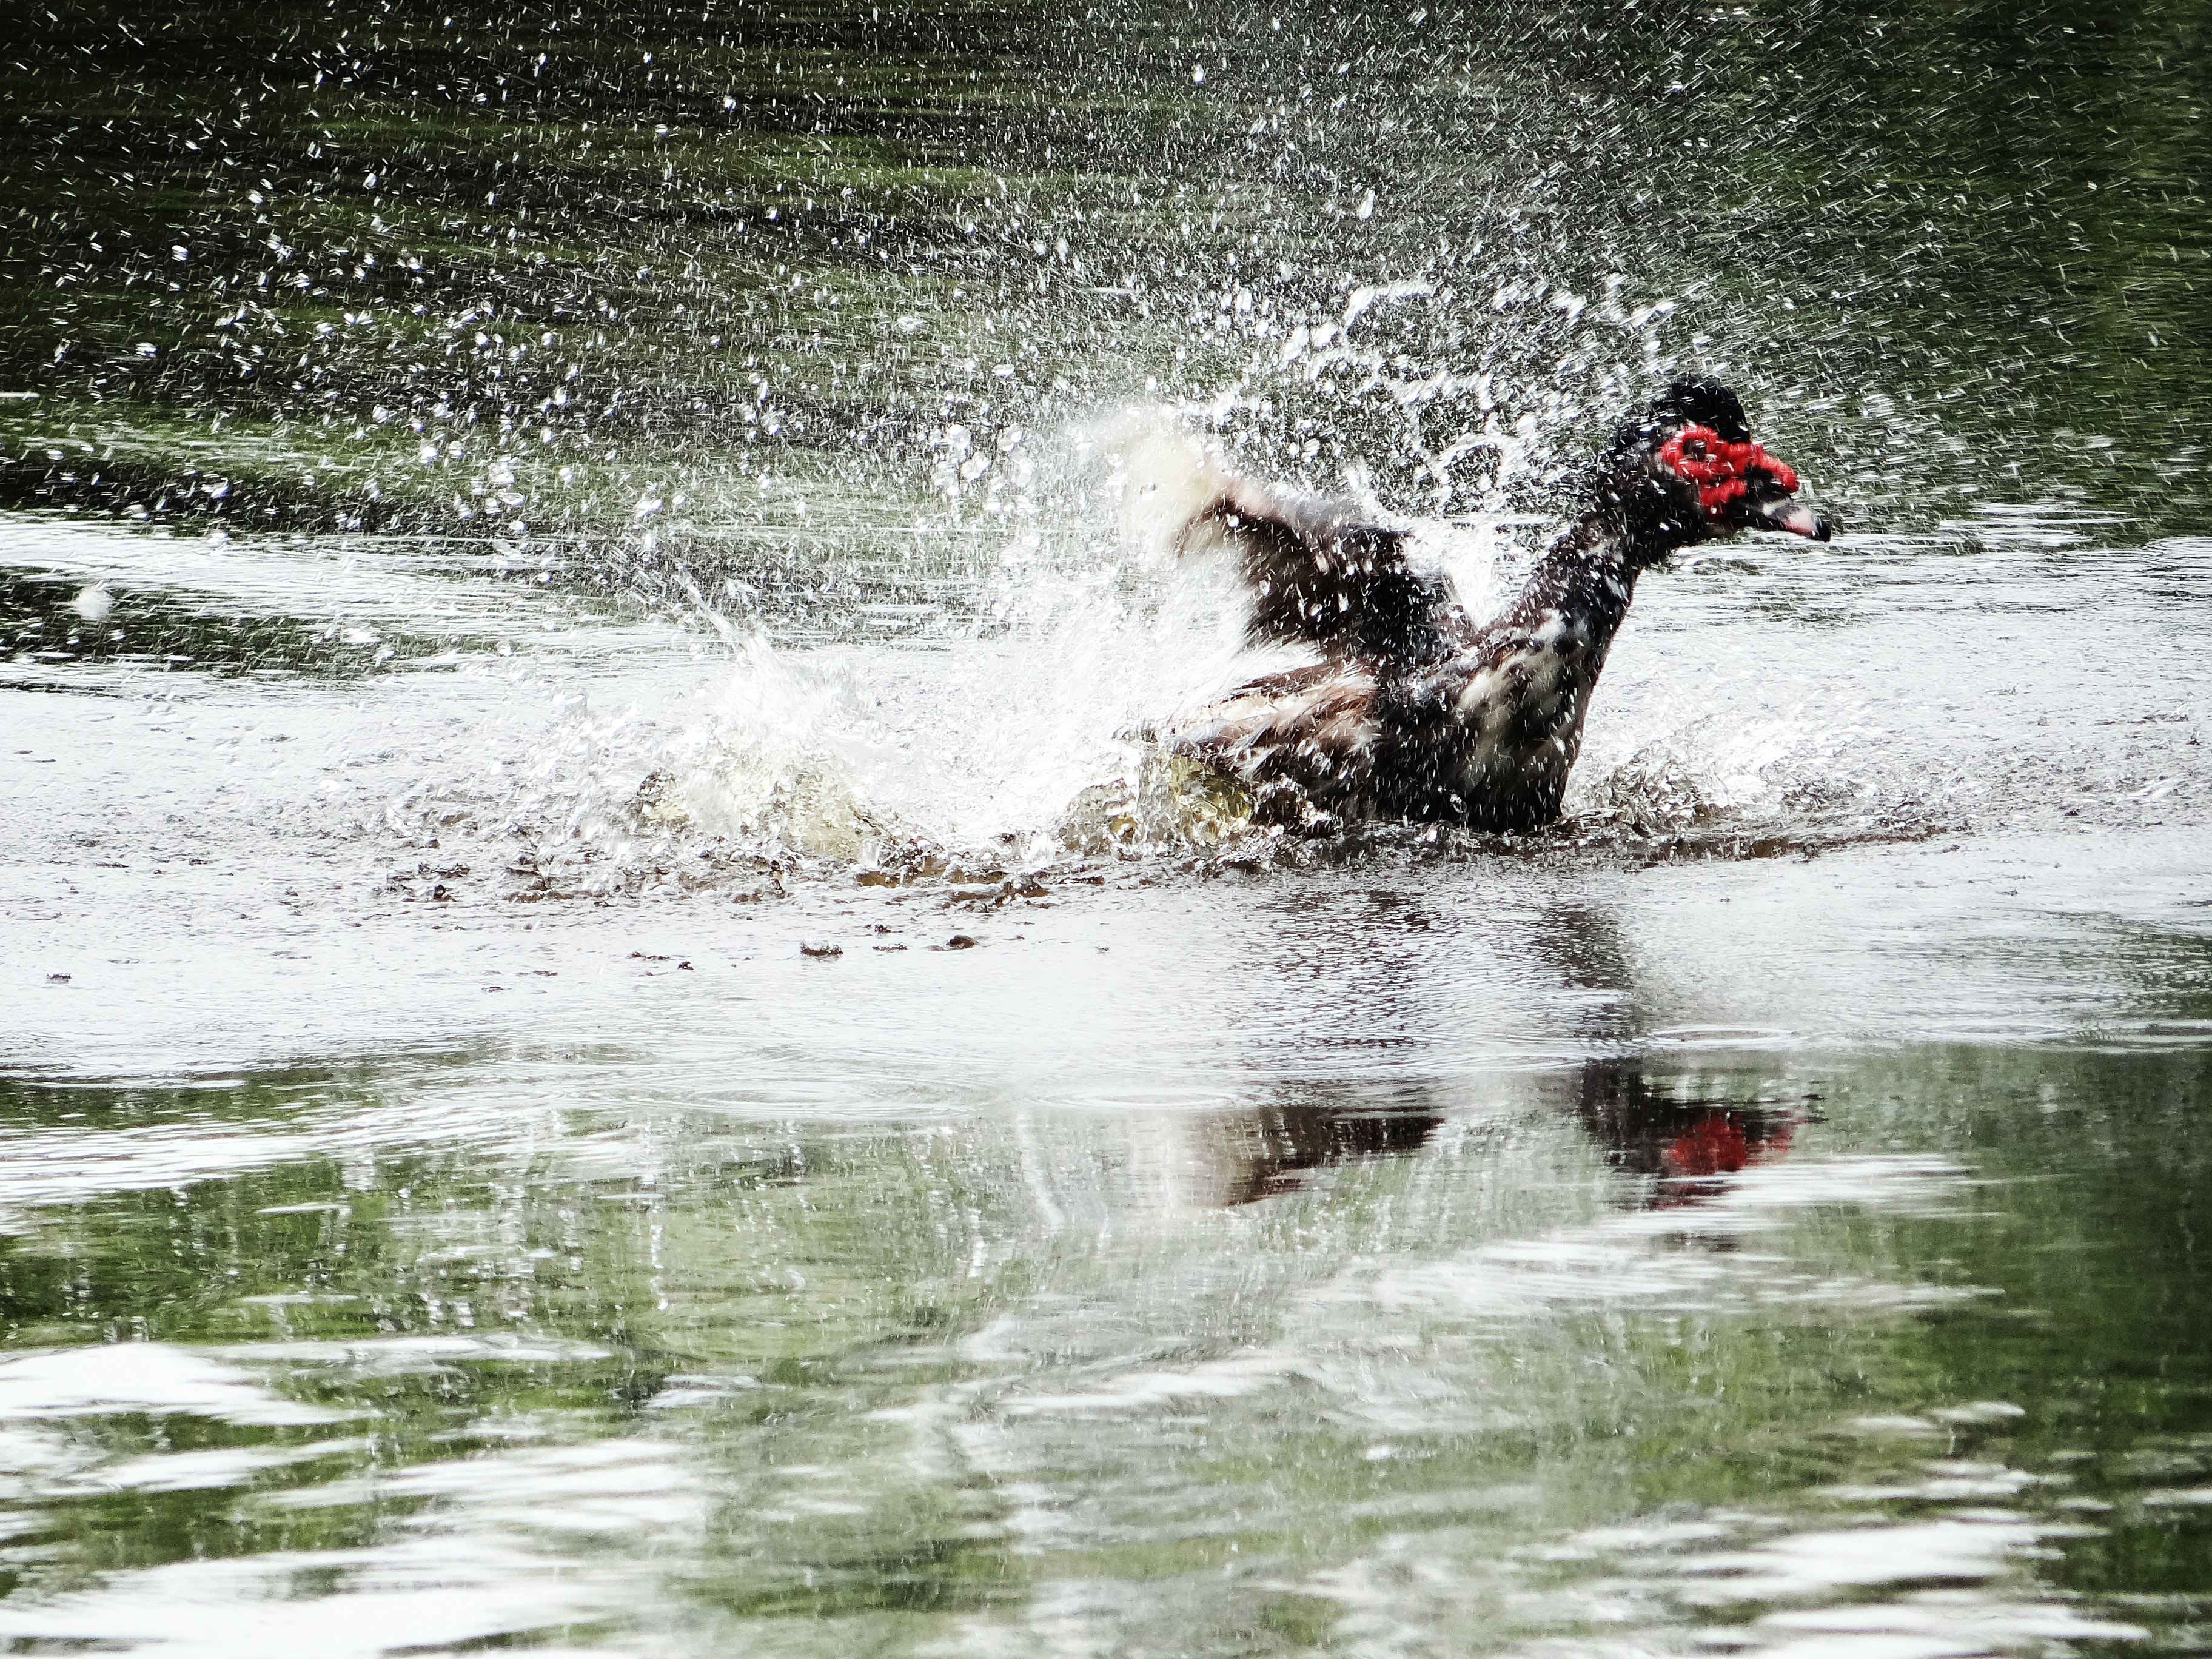 duck bathing on body of water